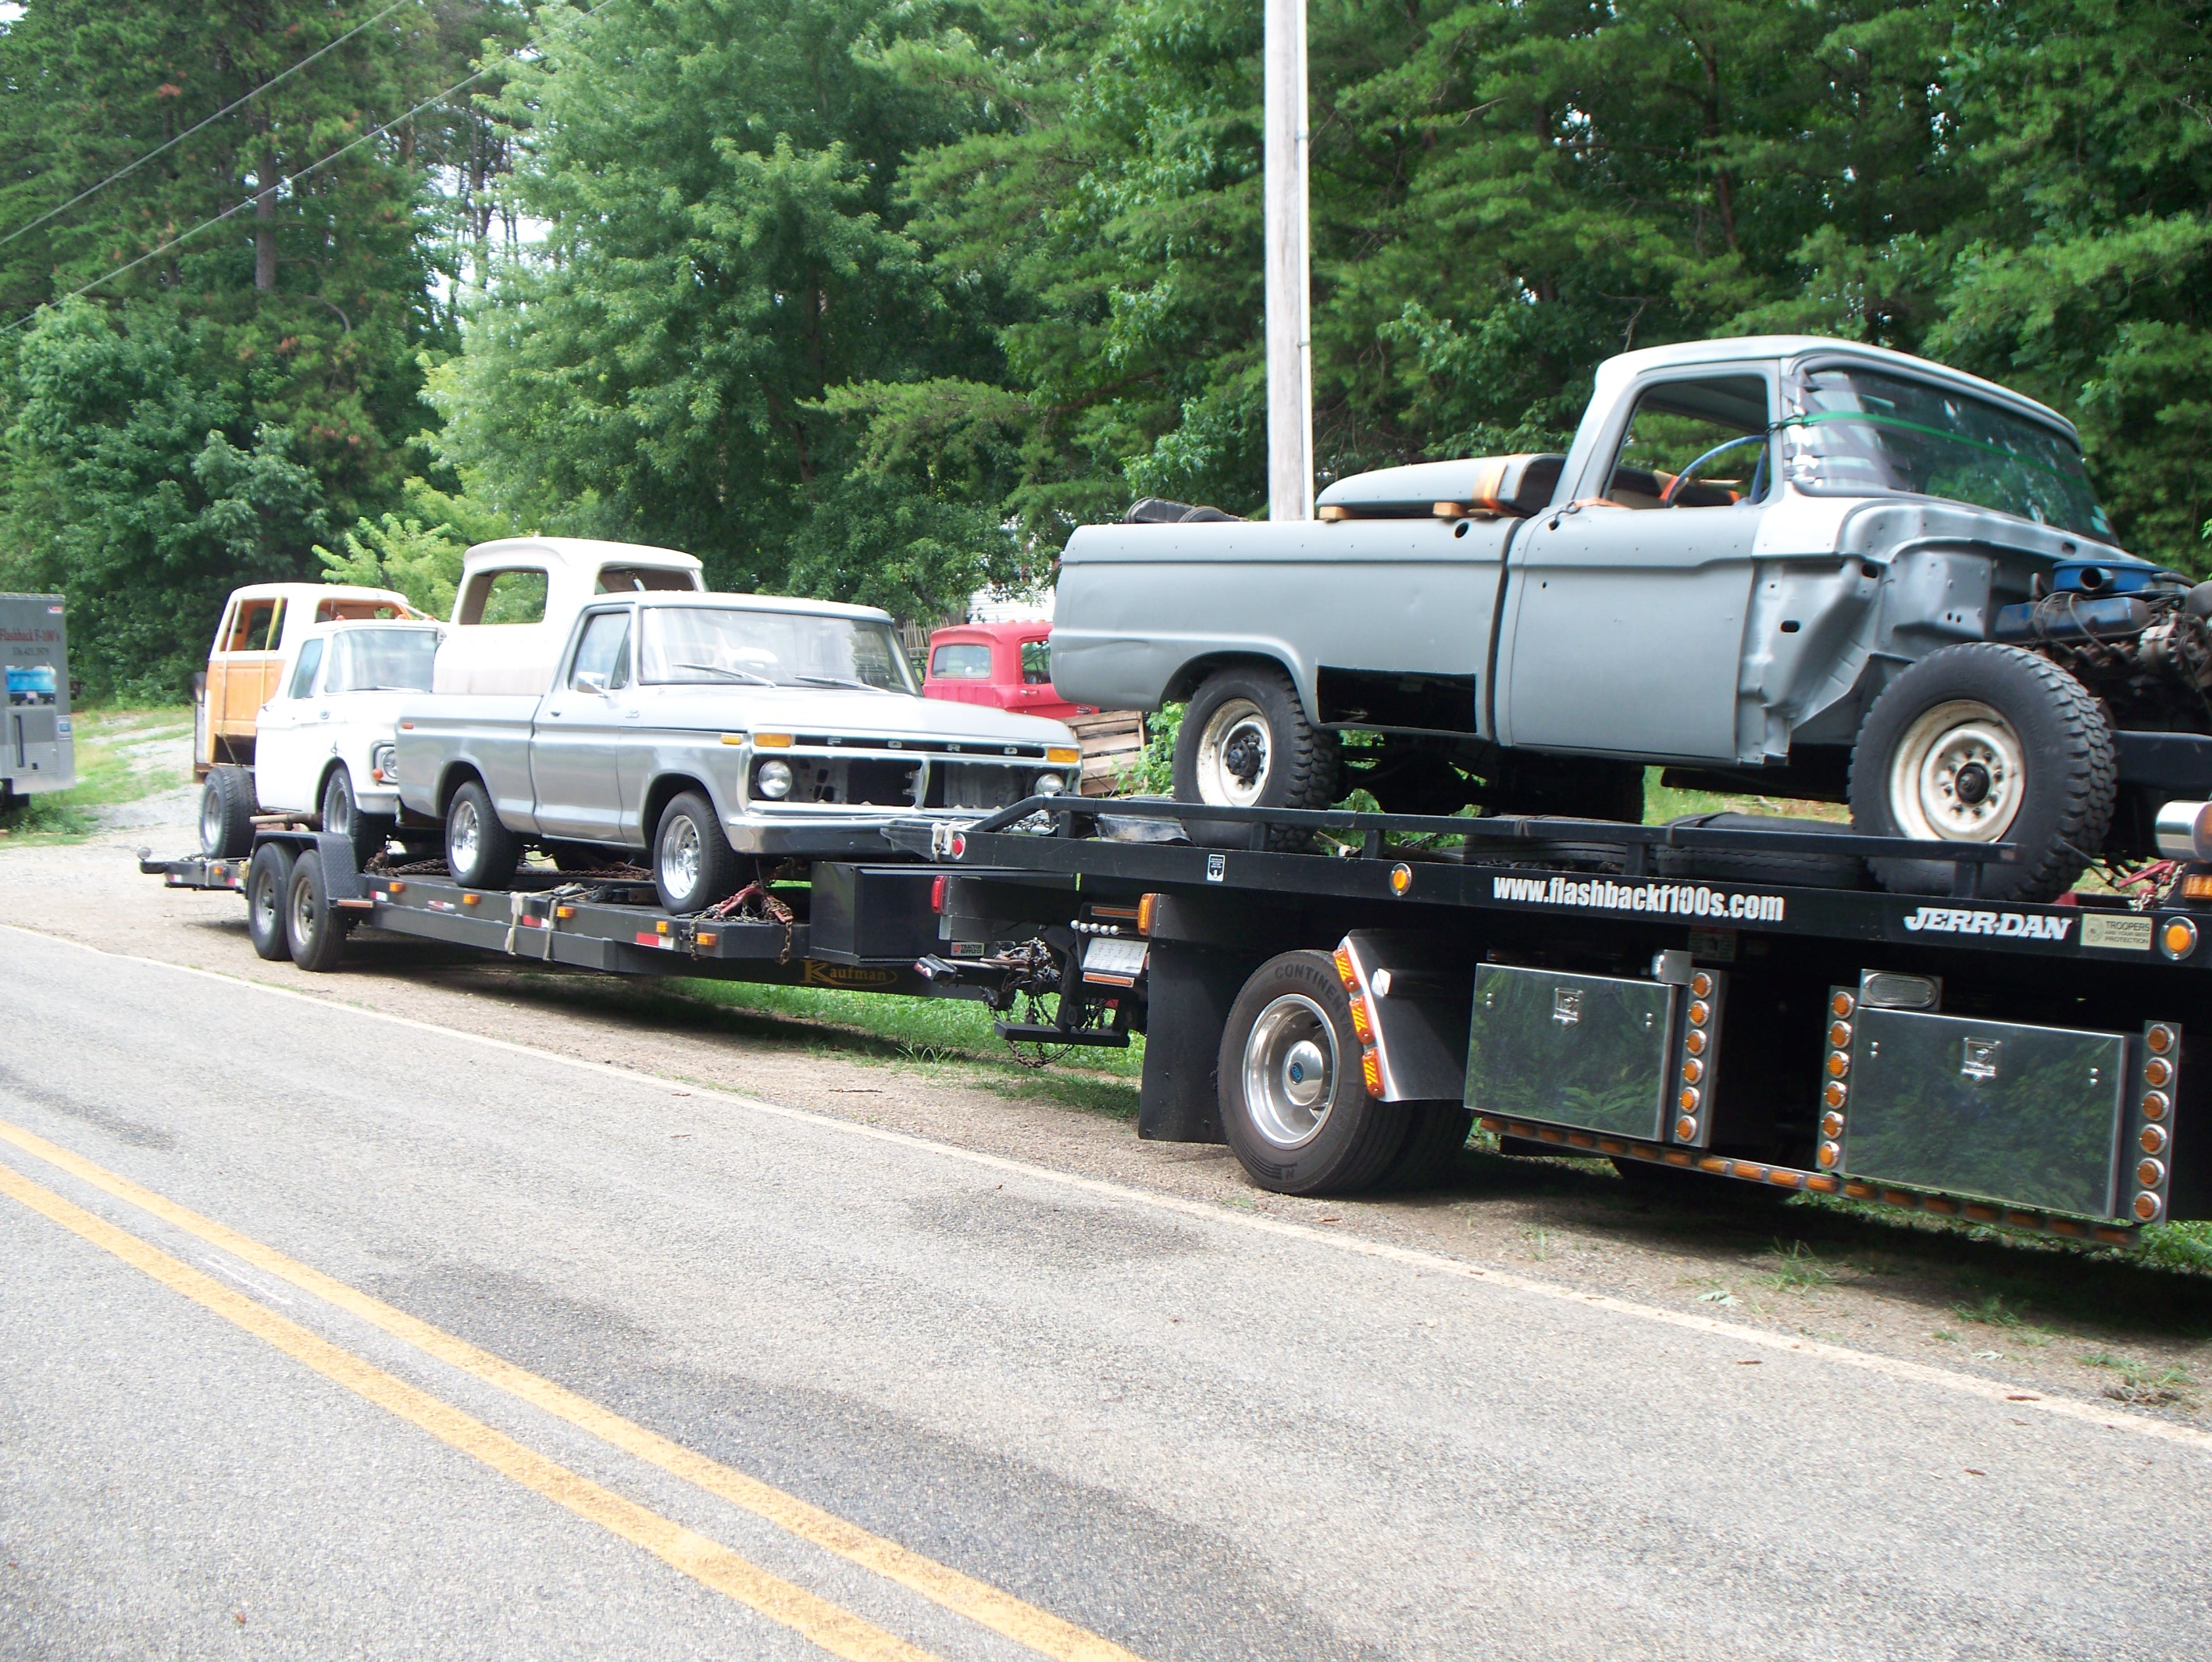 66 F-250, 77 F-150 and 63 F-100 withseveral rust free cabs